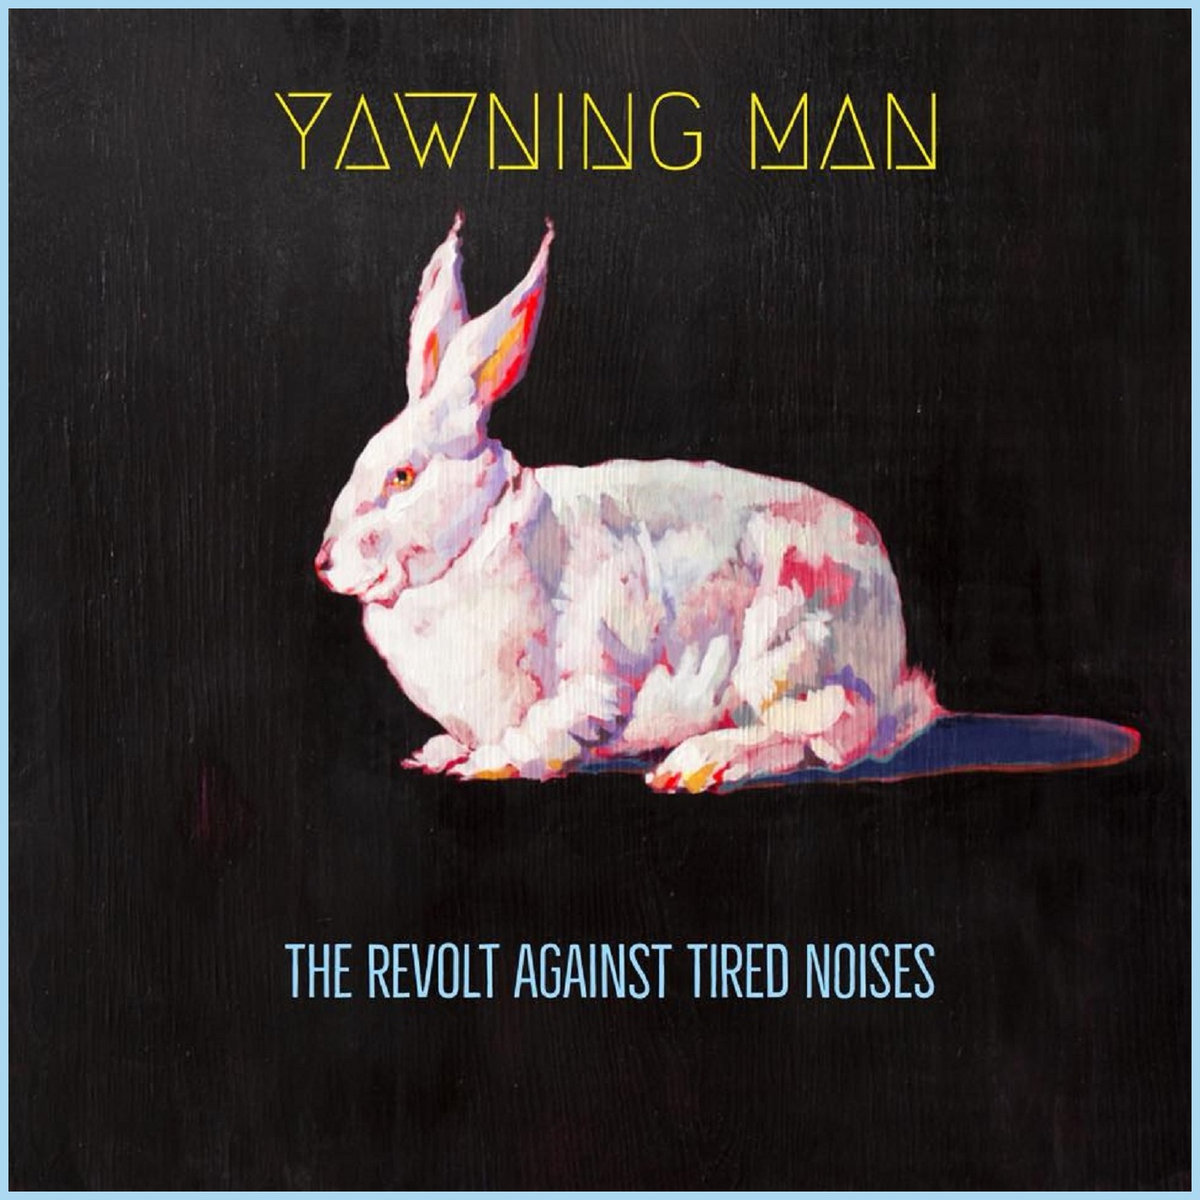 Yawning Man - The Revolt Against Tired Noises [LP]